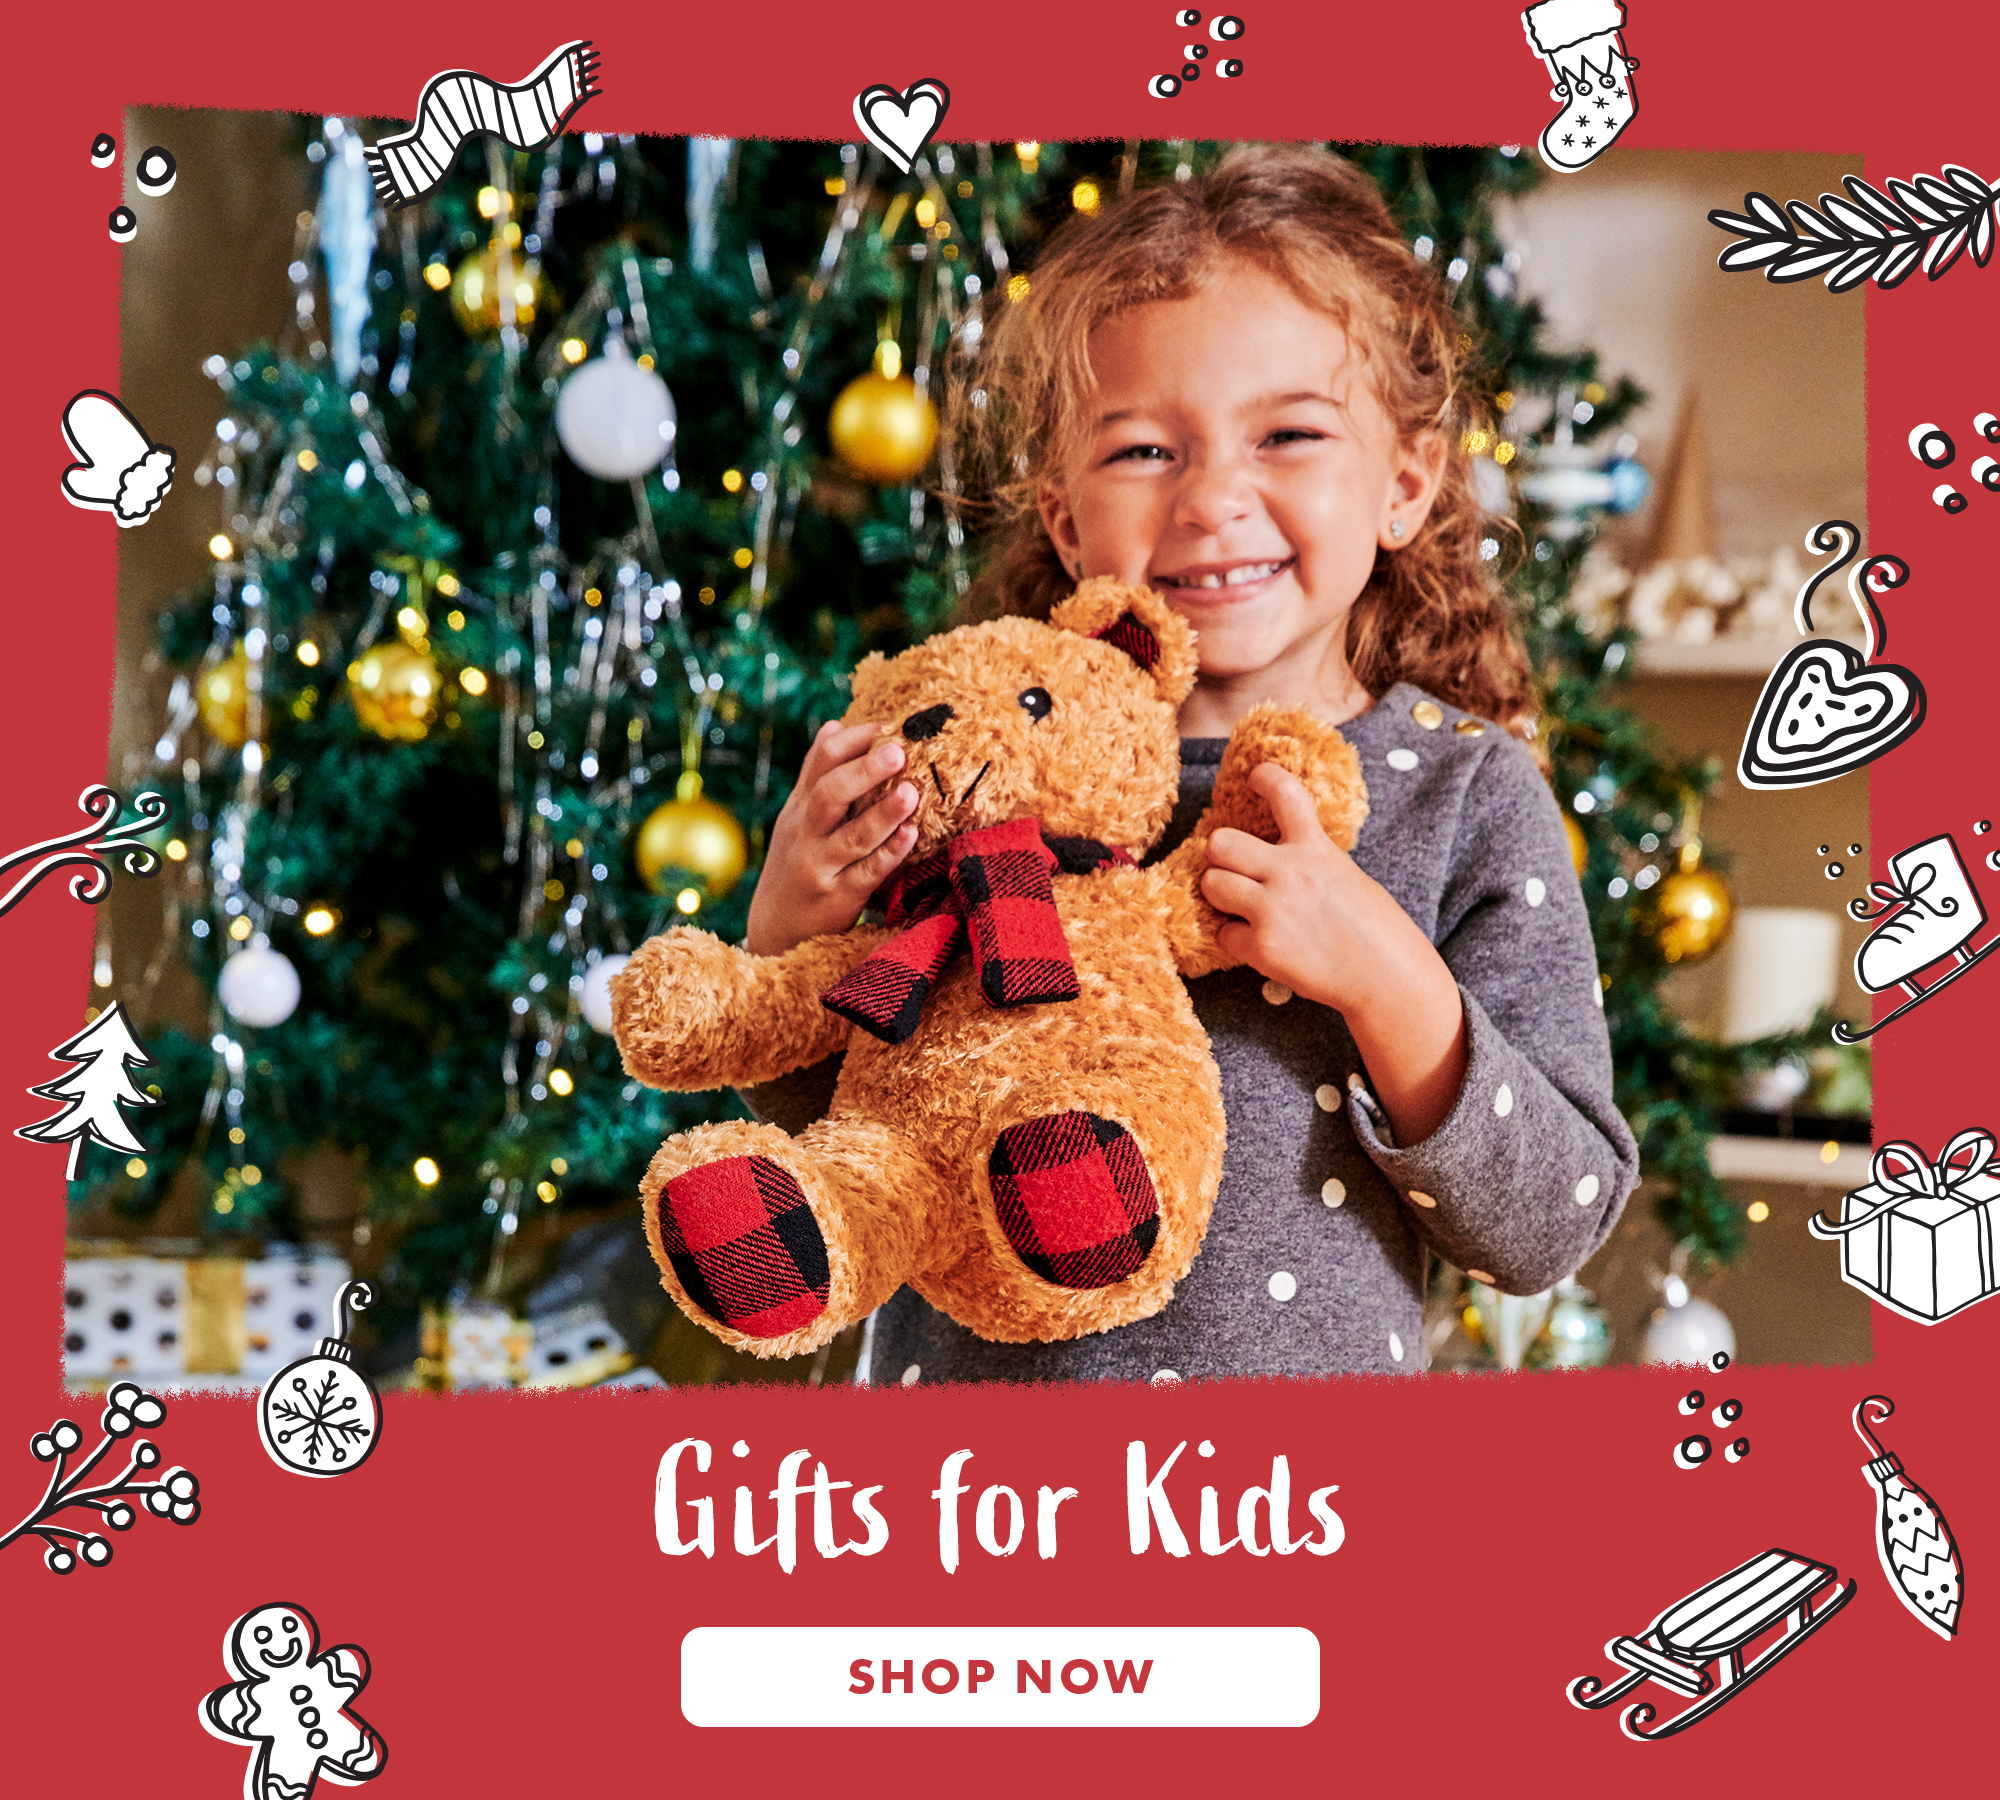 Gifts for Kids Shop Now